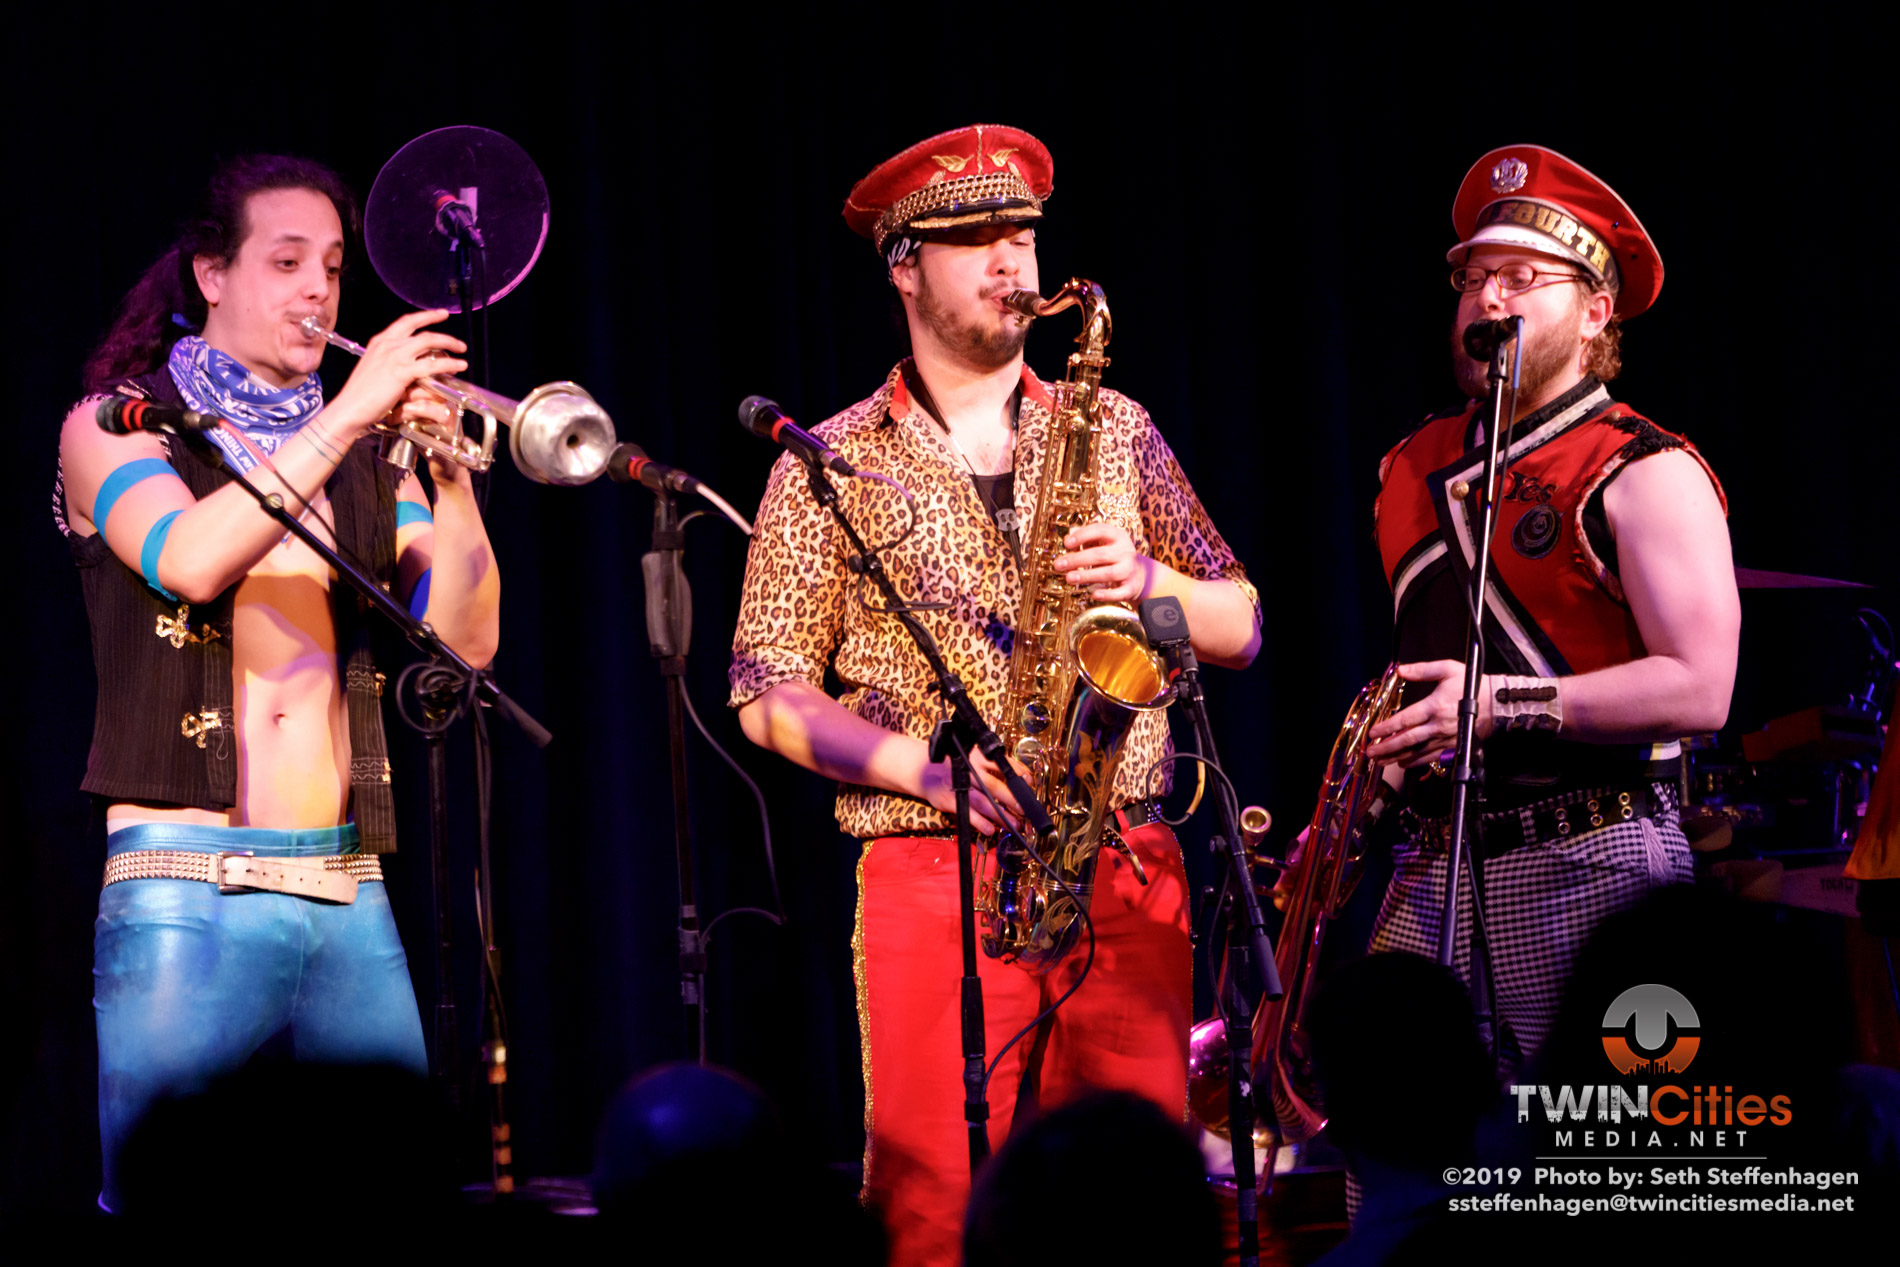 March 15, 2019 - Minneapolis, Minnesota, United States - MarchFourth live in concert at the Cedar Cultural Center along with Orkestar Biz Ime as the openers.  (Photo by Seth Steffenhagen/Steffenhagen Photography)